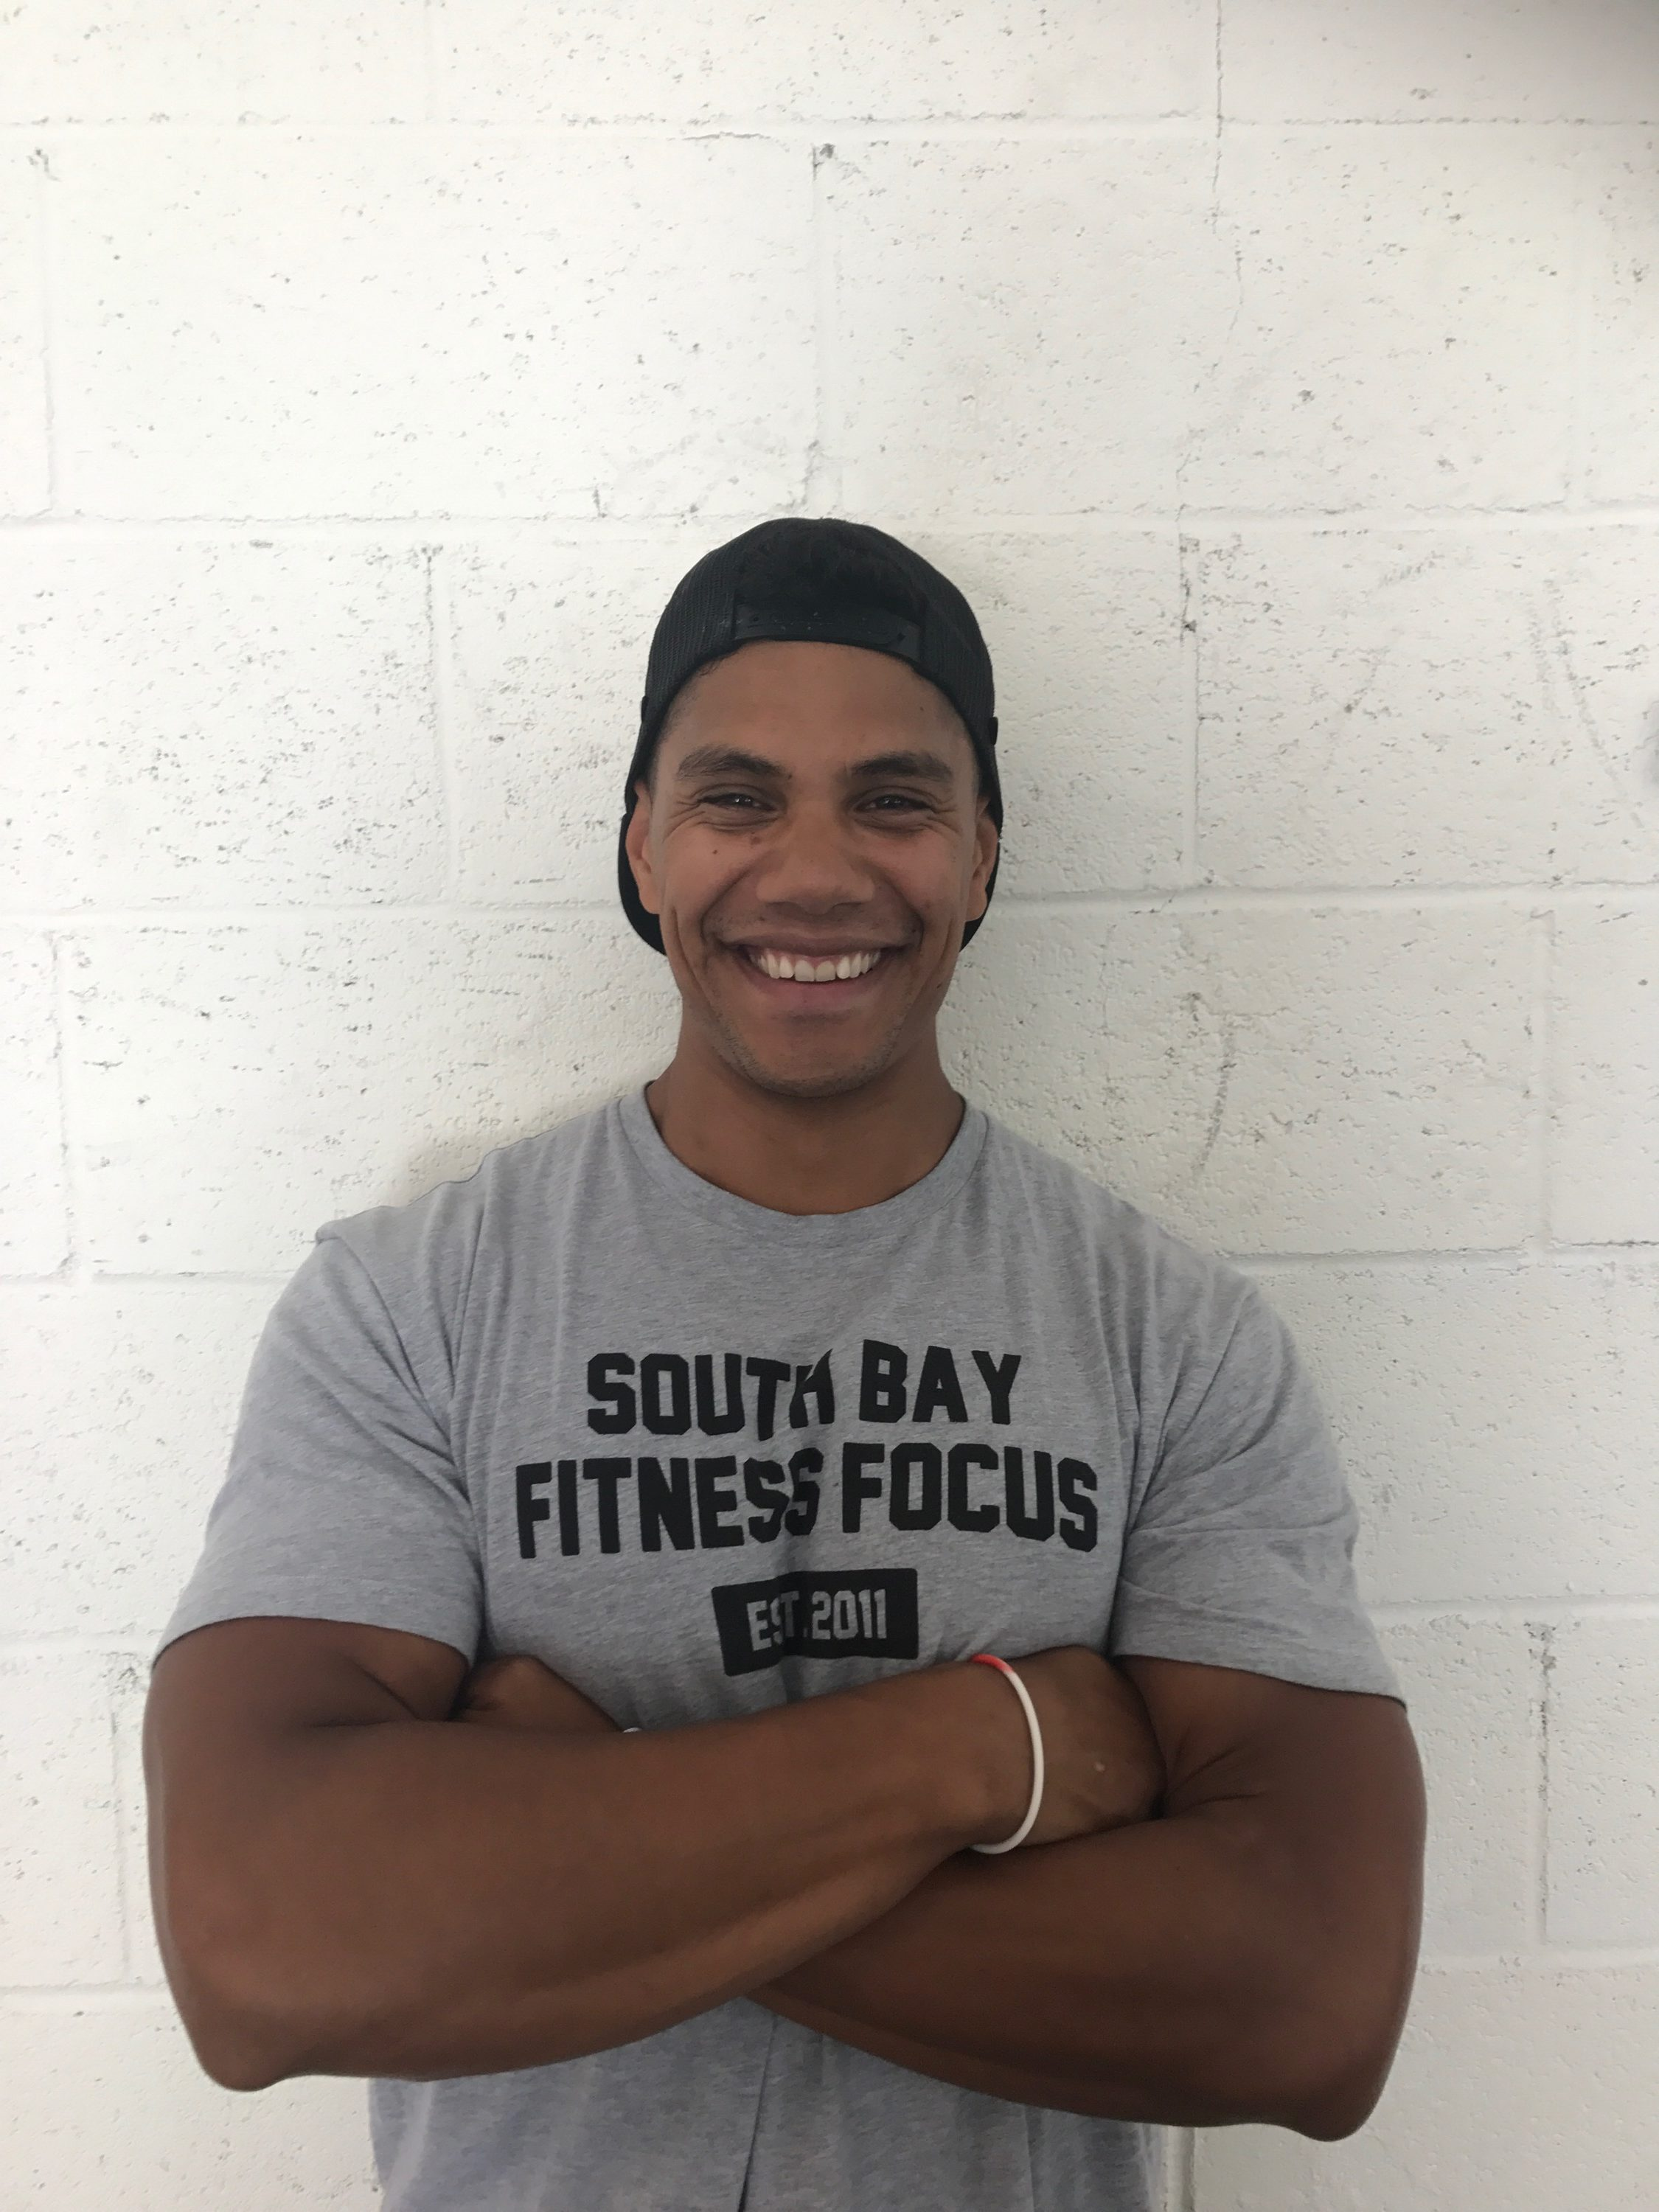 South Bay Fitness Focus California